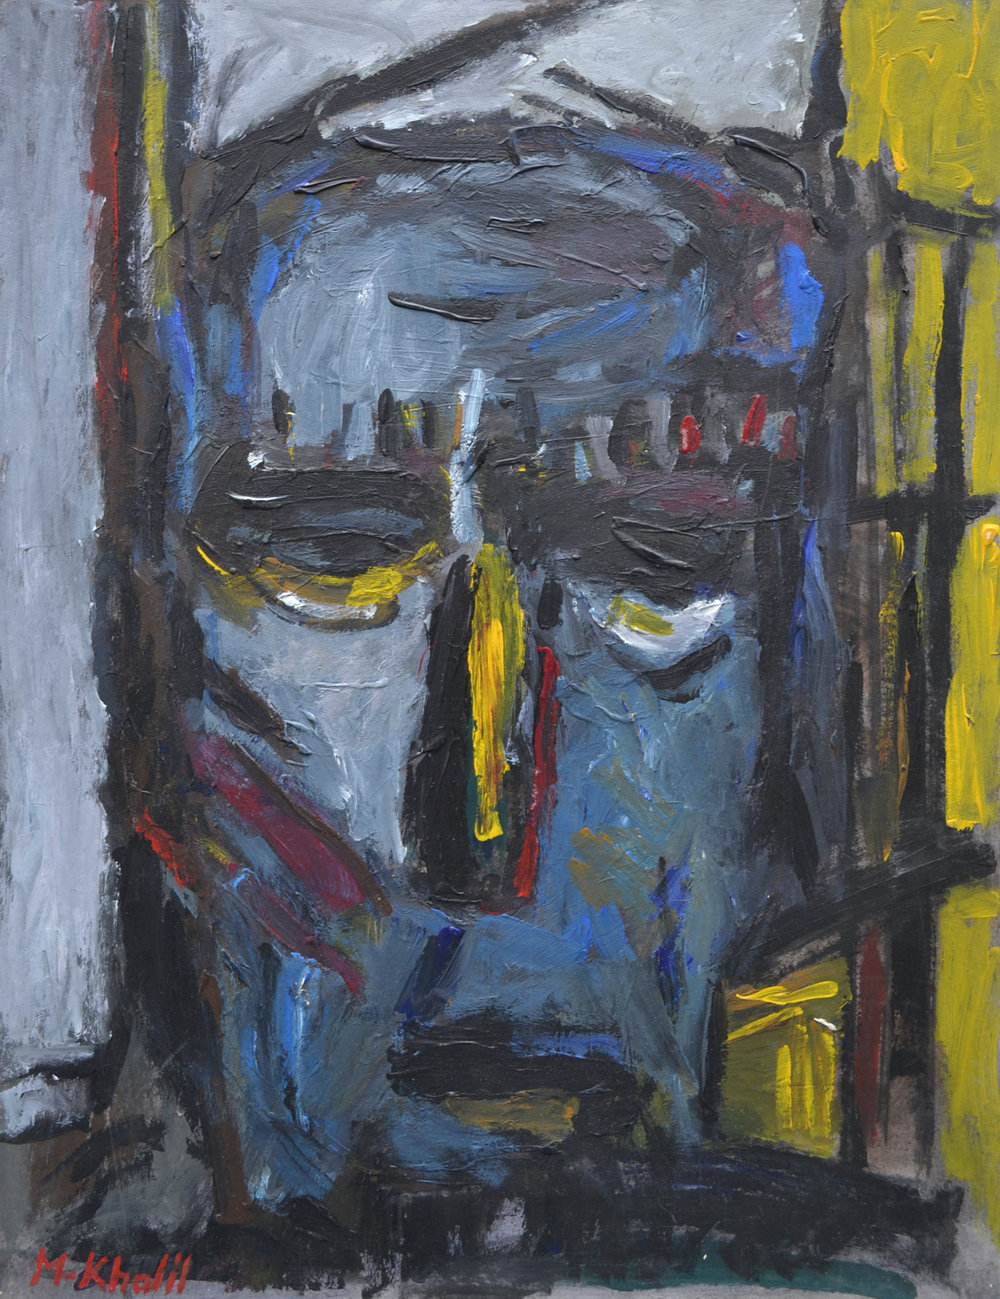 XOL Gallery - Mohamed Khalil (Palestine) - _Portrait_ - 20 x26 in - Acrylic on cardboard - $1,500.00.jpg